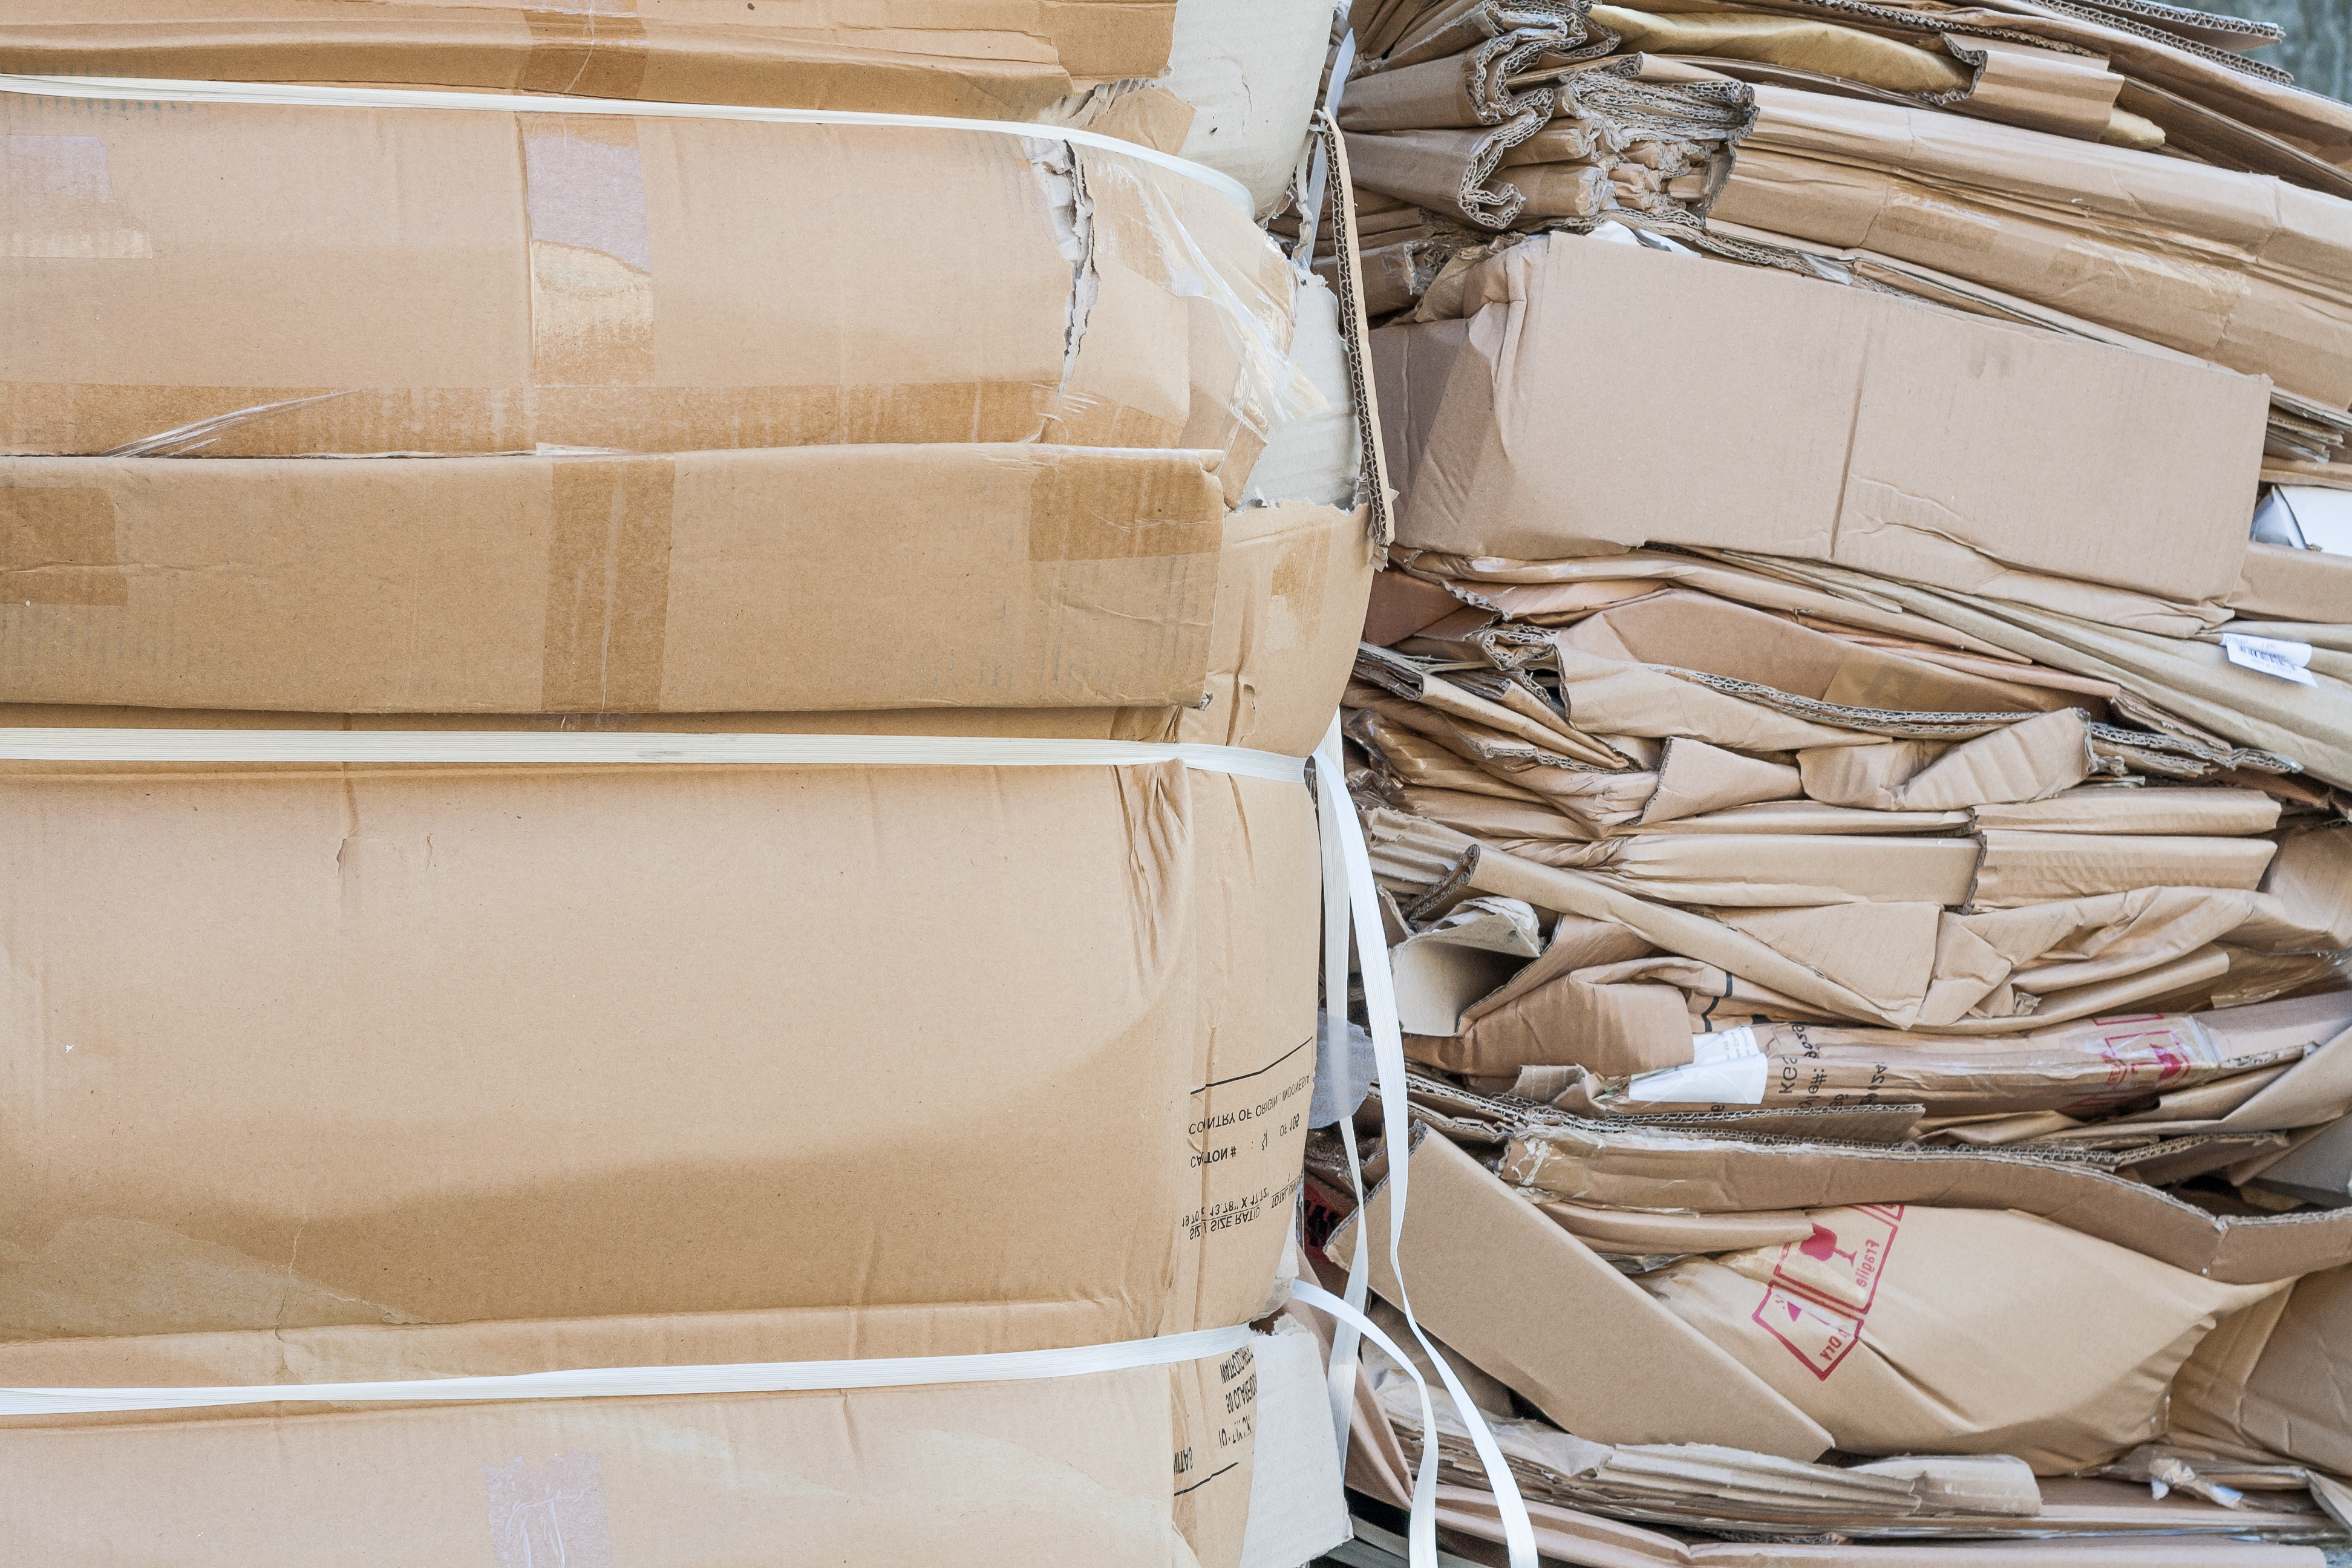 Is your business producing high levels of packaging waste?